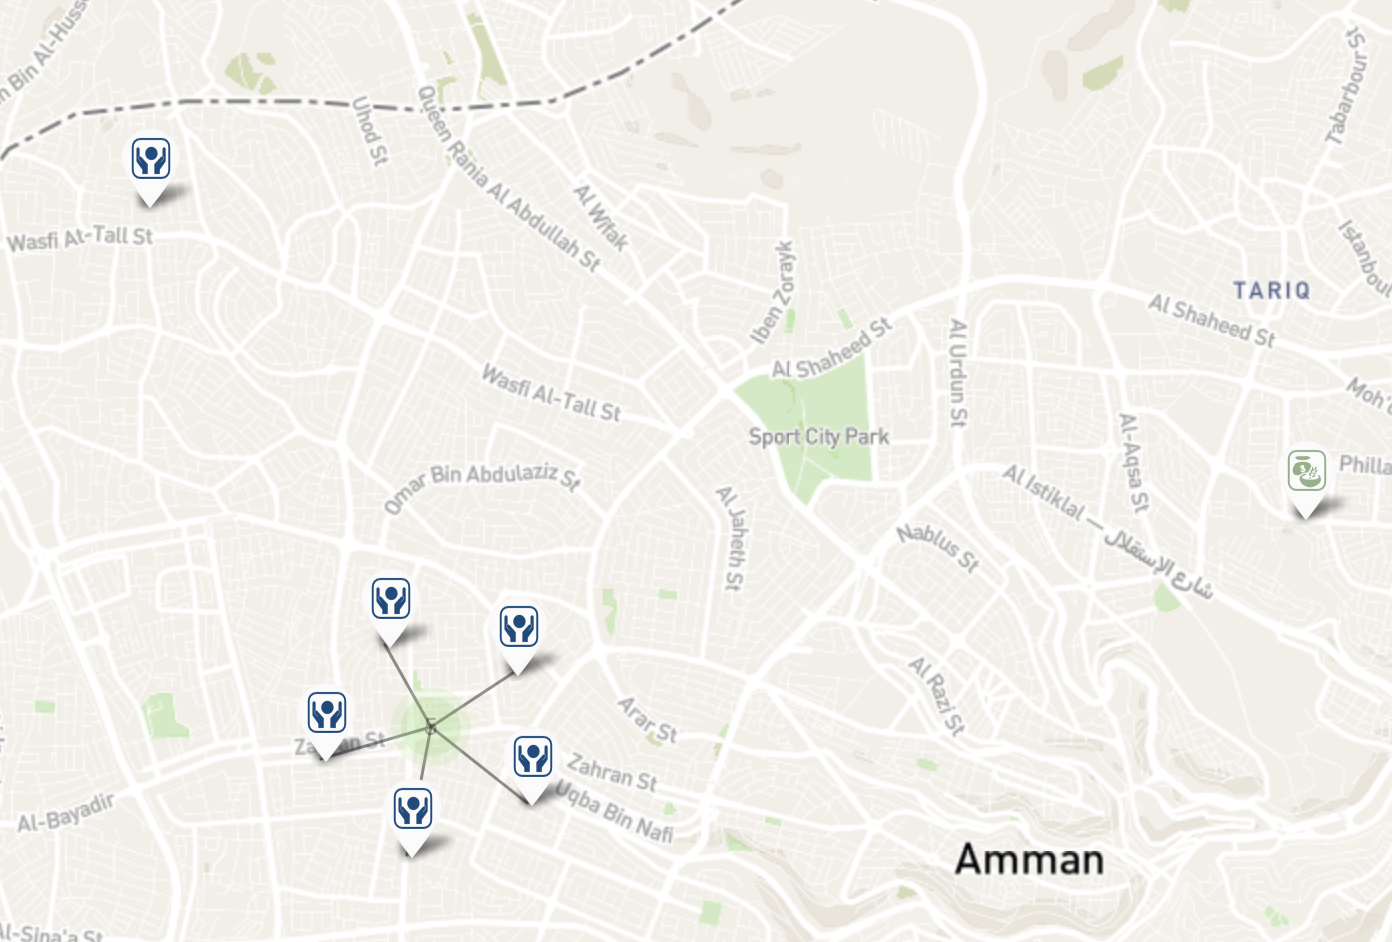 Official services for refugees are distributed across Amman, although the two largest providers are CARE (lower left), and UNHCR (upper left), both located in the relatively upscale neighborhoods of West Amman. Map from UNHCR Services Advisor Client.